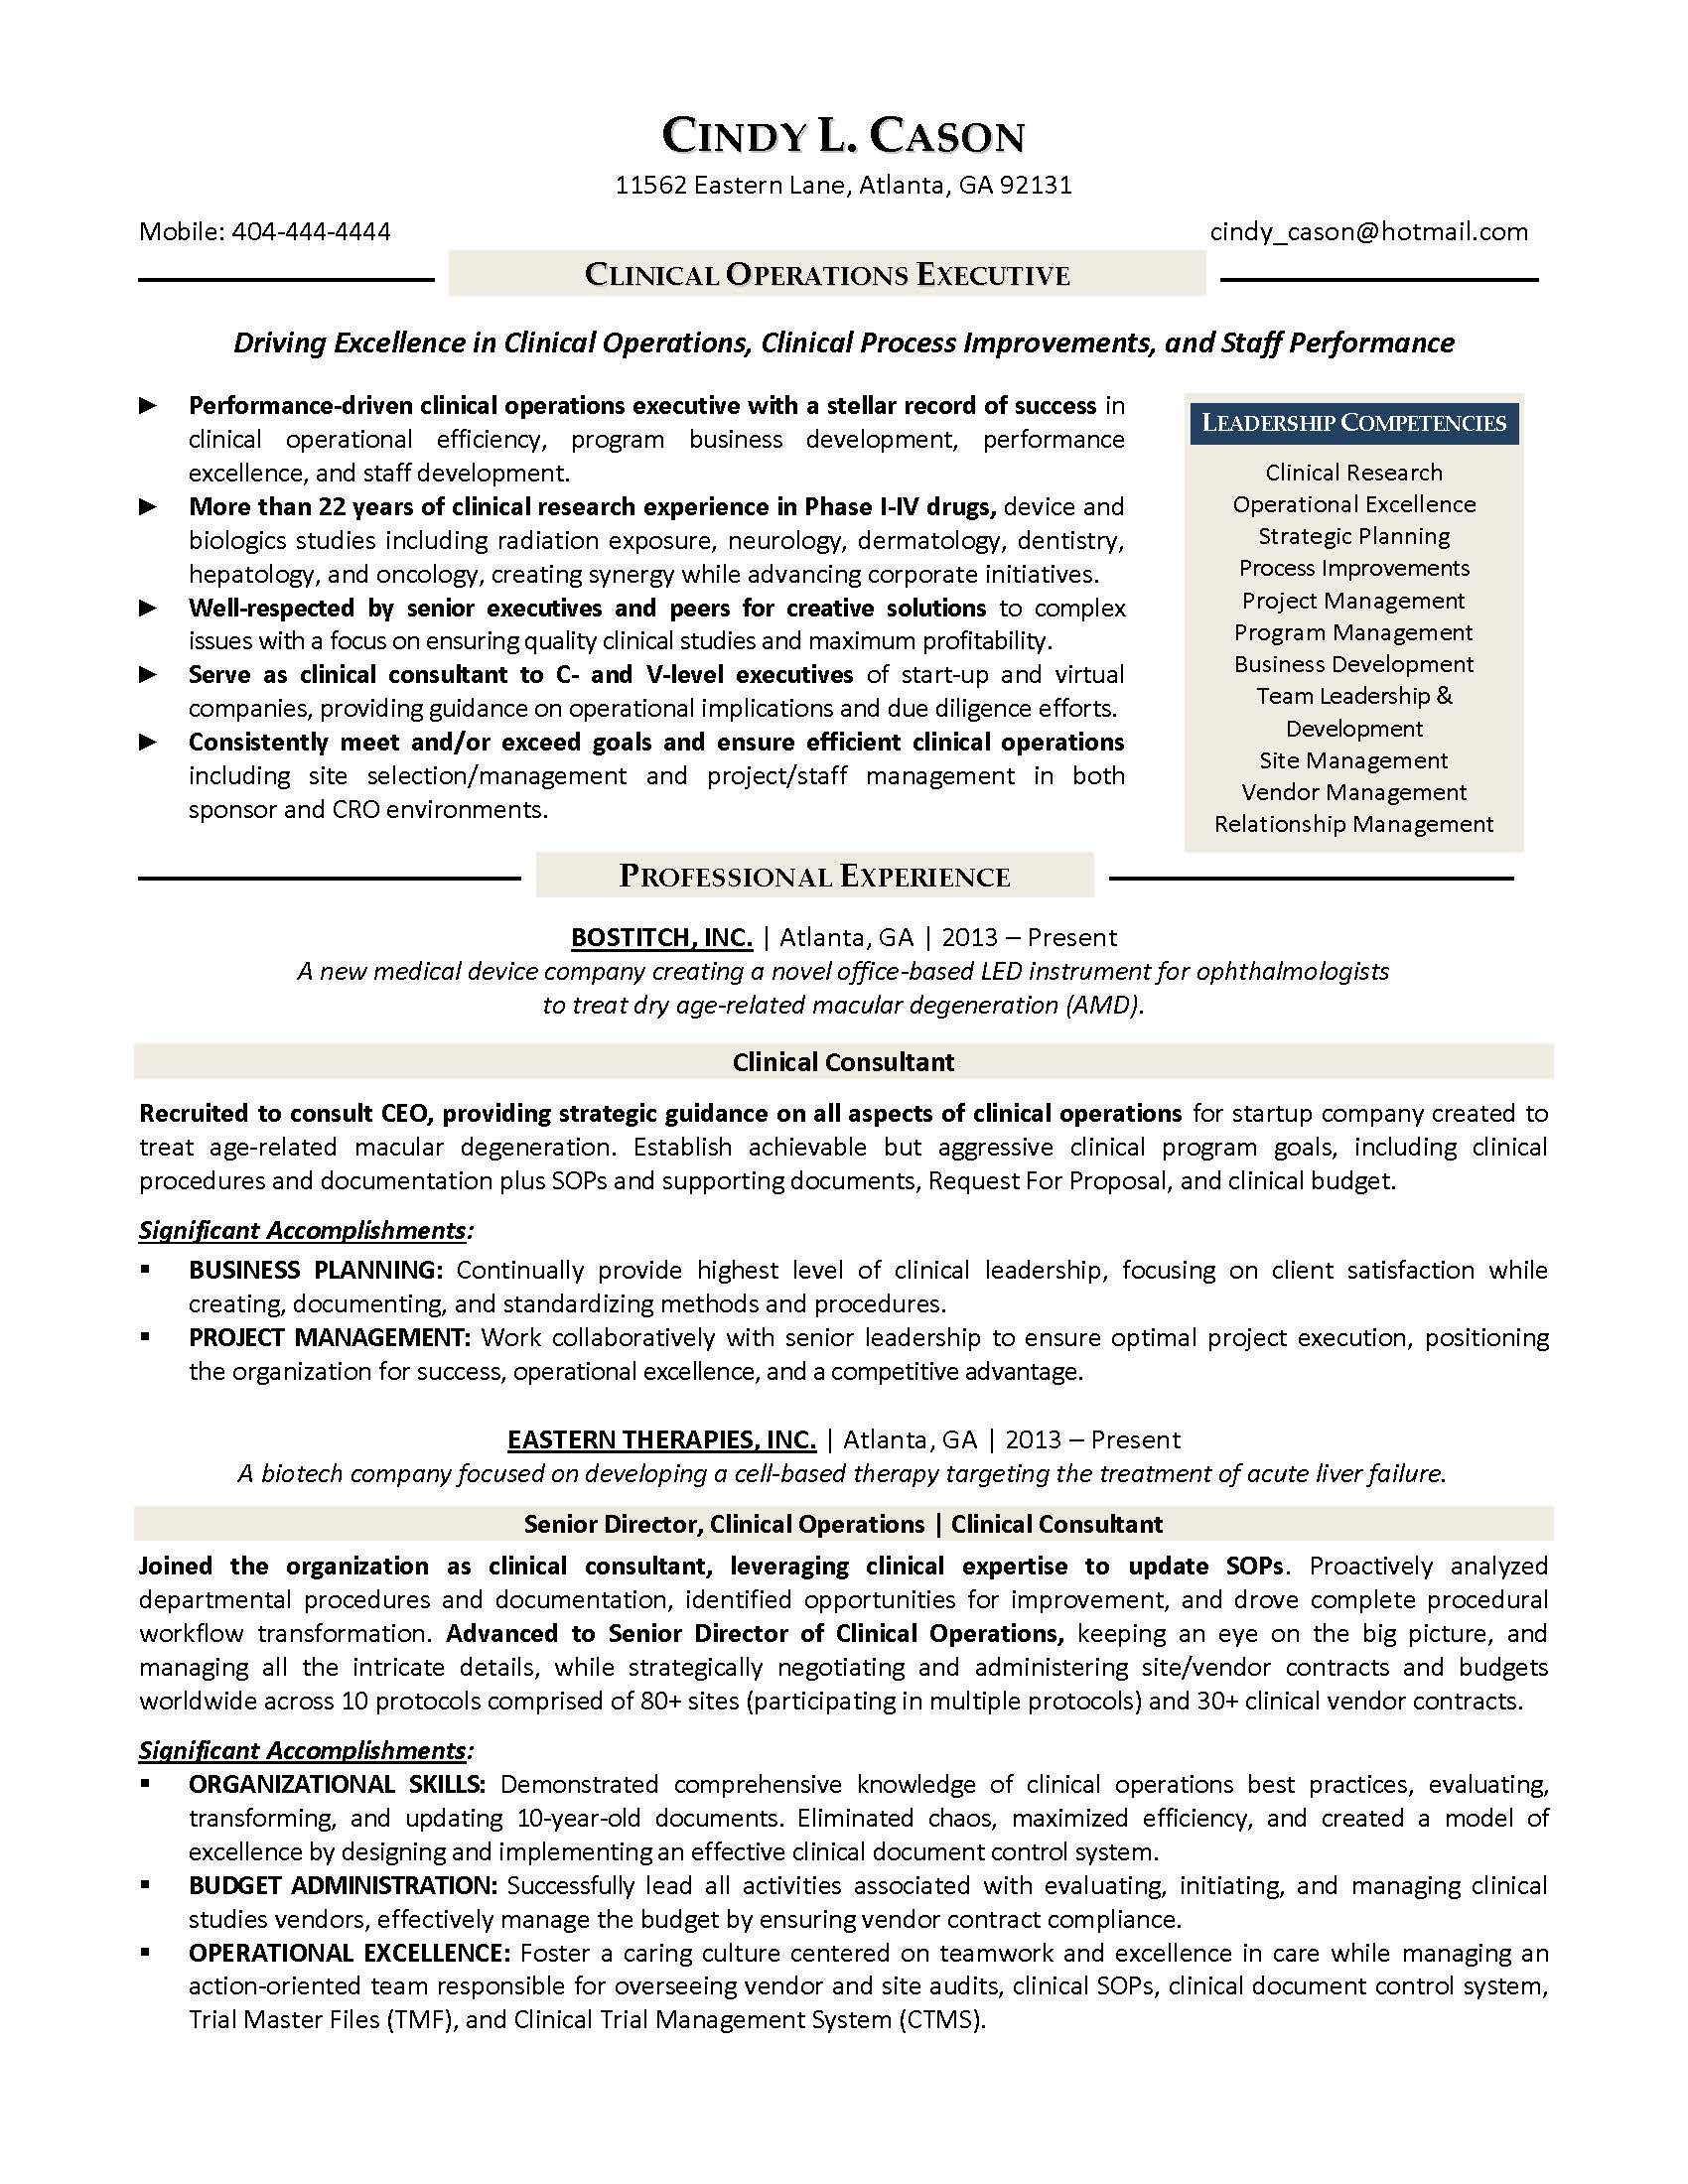 clinical operations executive resume sample, provided by Elite Resume Writing Services